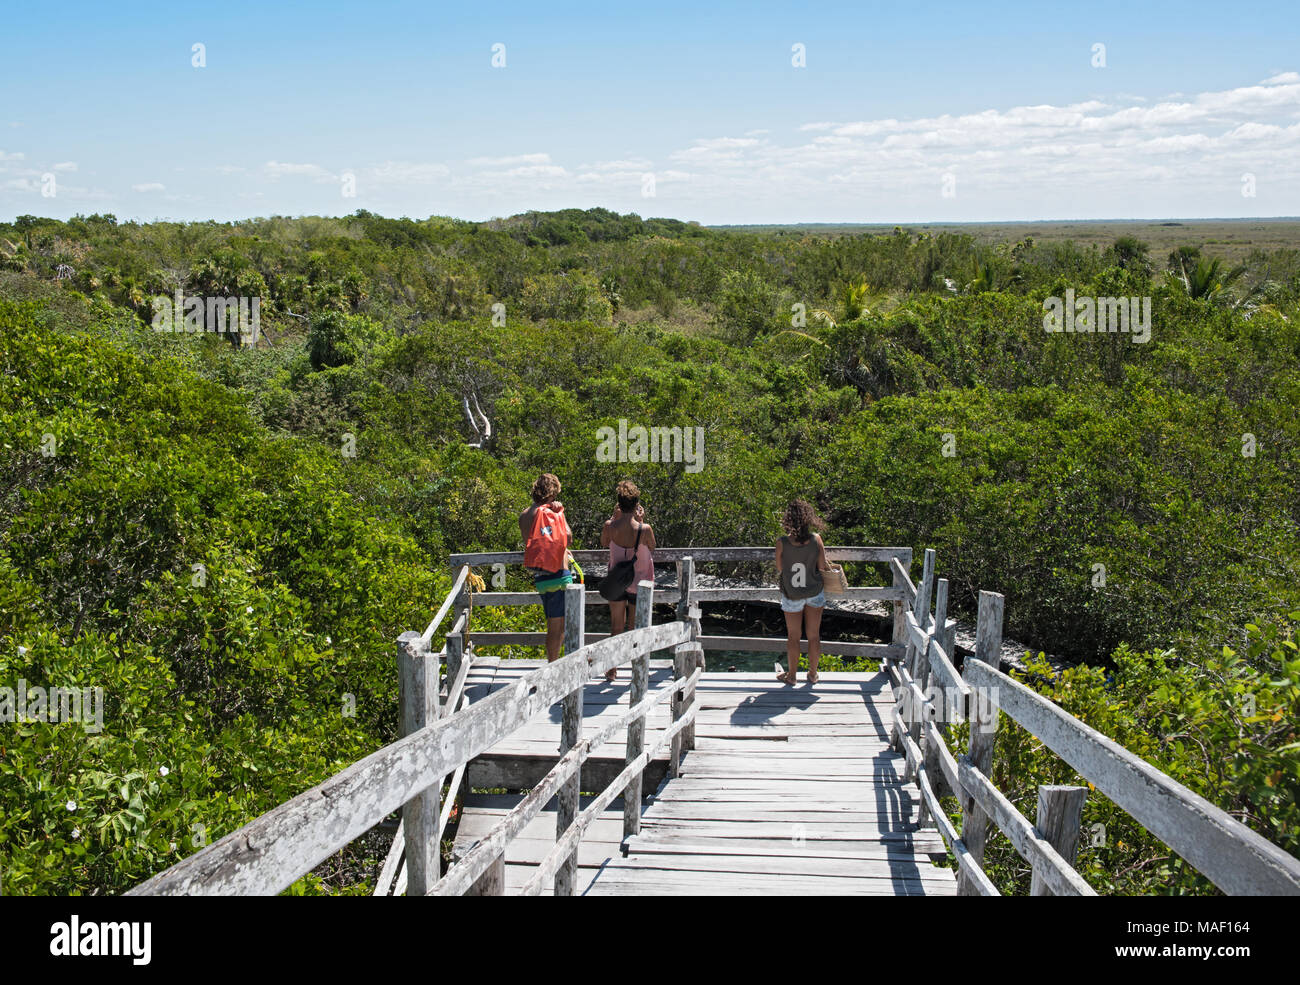 Tourists on the observation deck over the cenote Yalahau, Holbox, Quintana Roo, Mexico - Stock Image